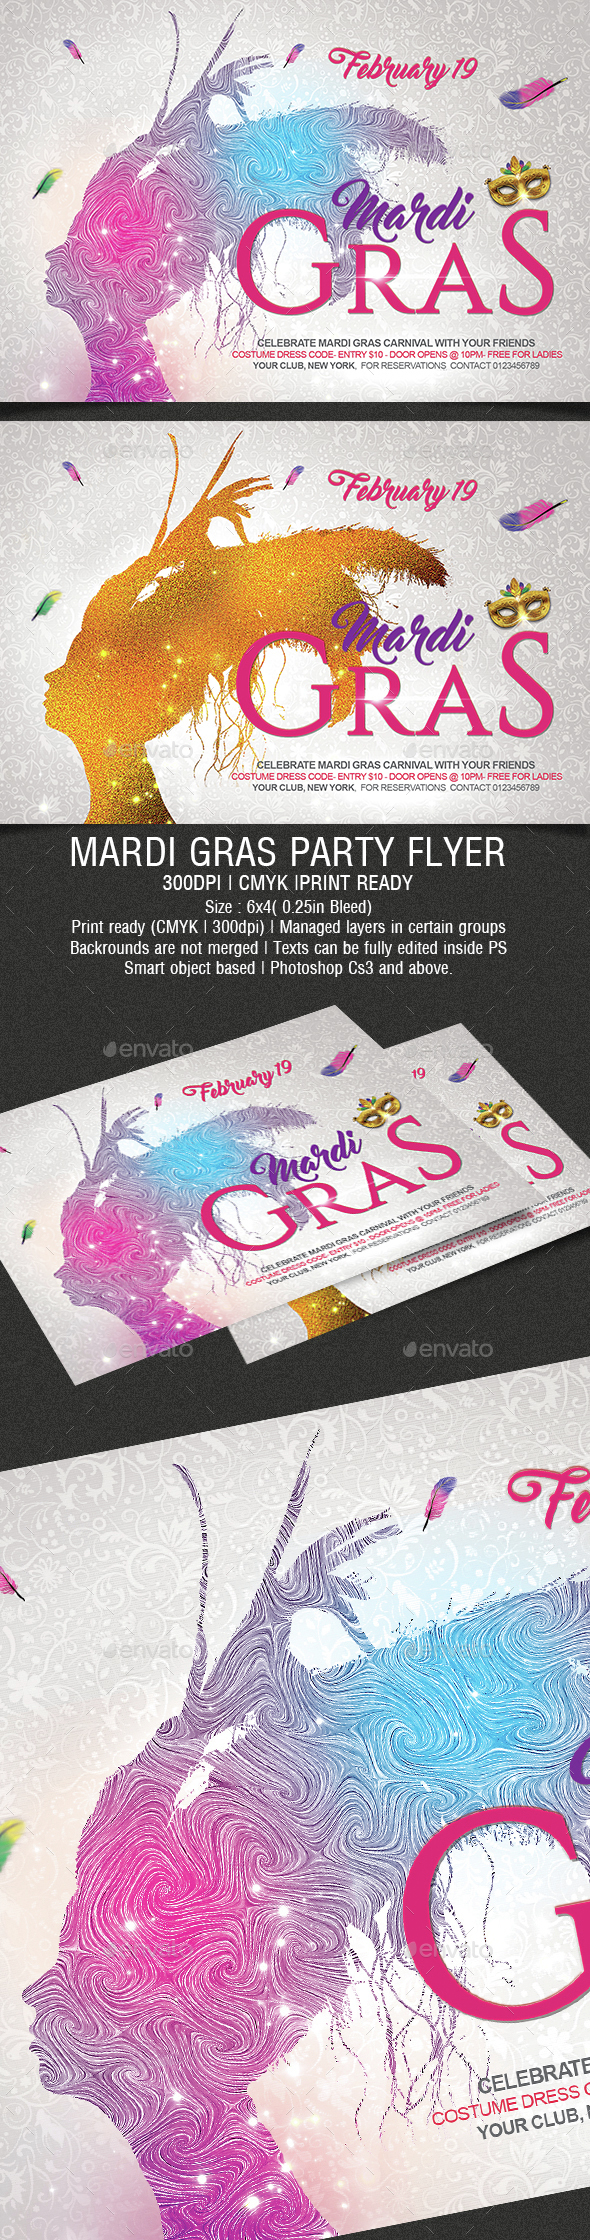 Mardi Gras Party Flyer - Holidays Events